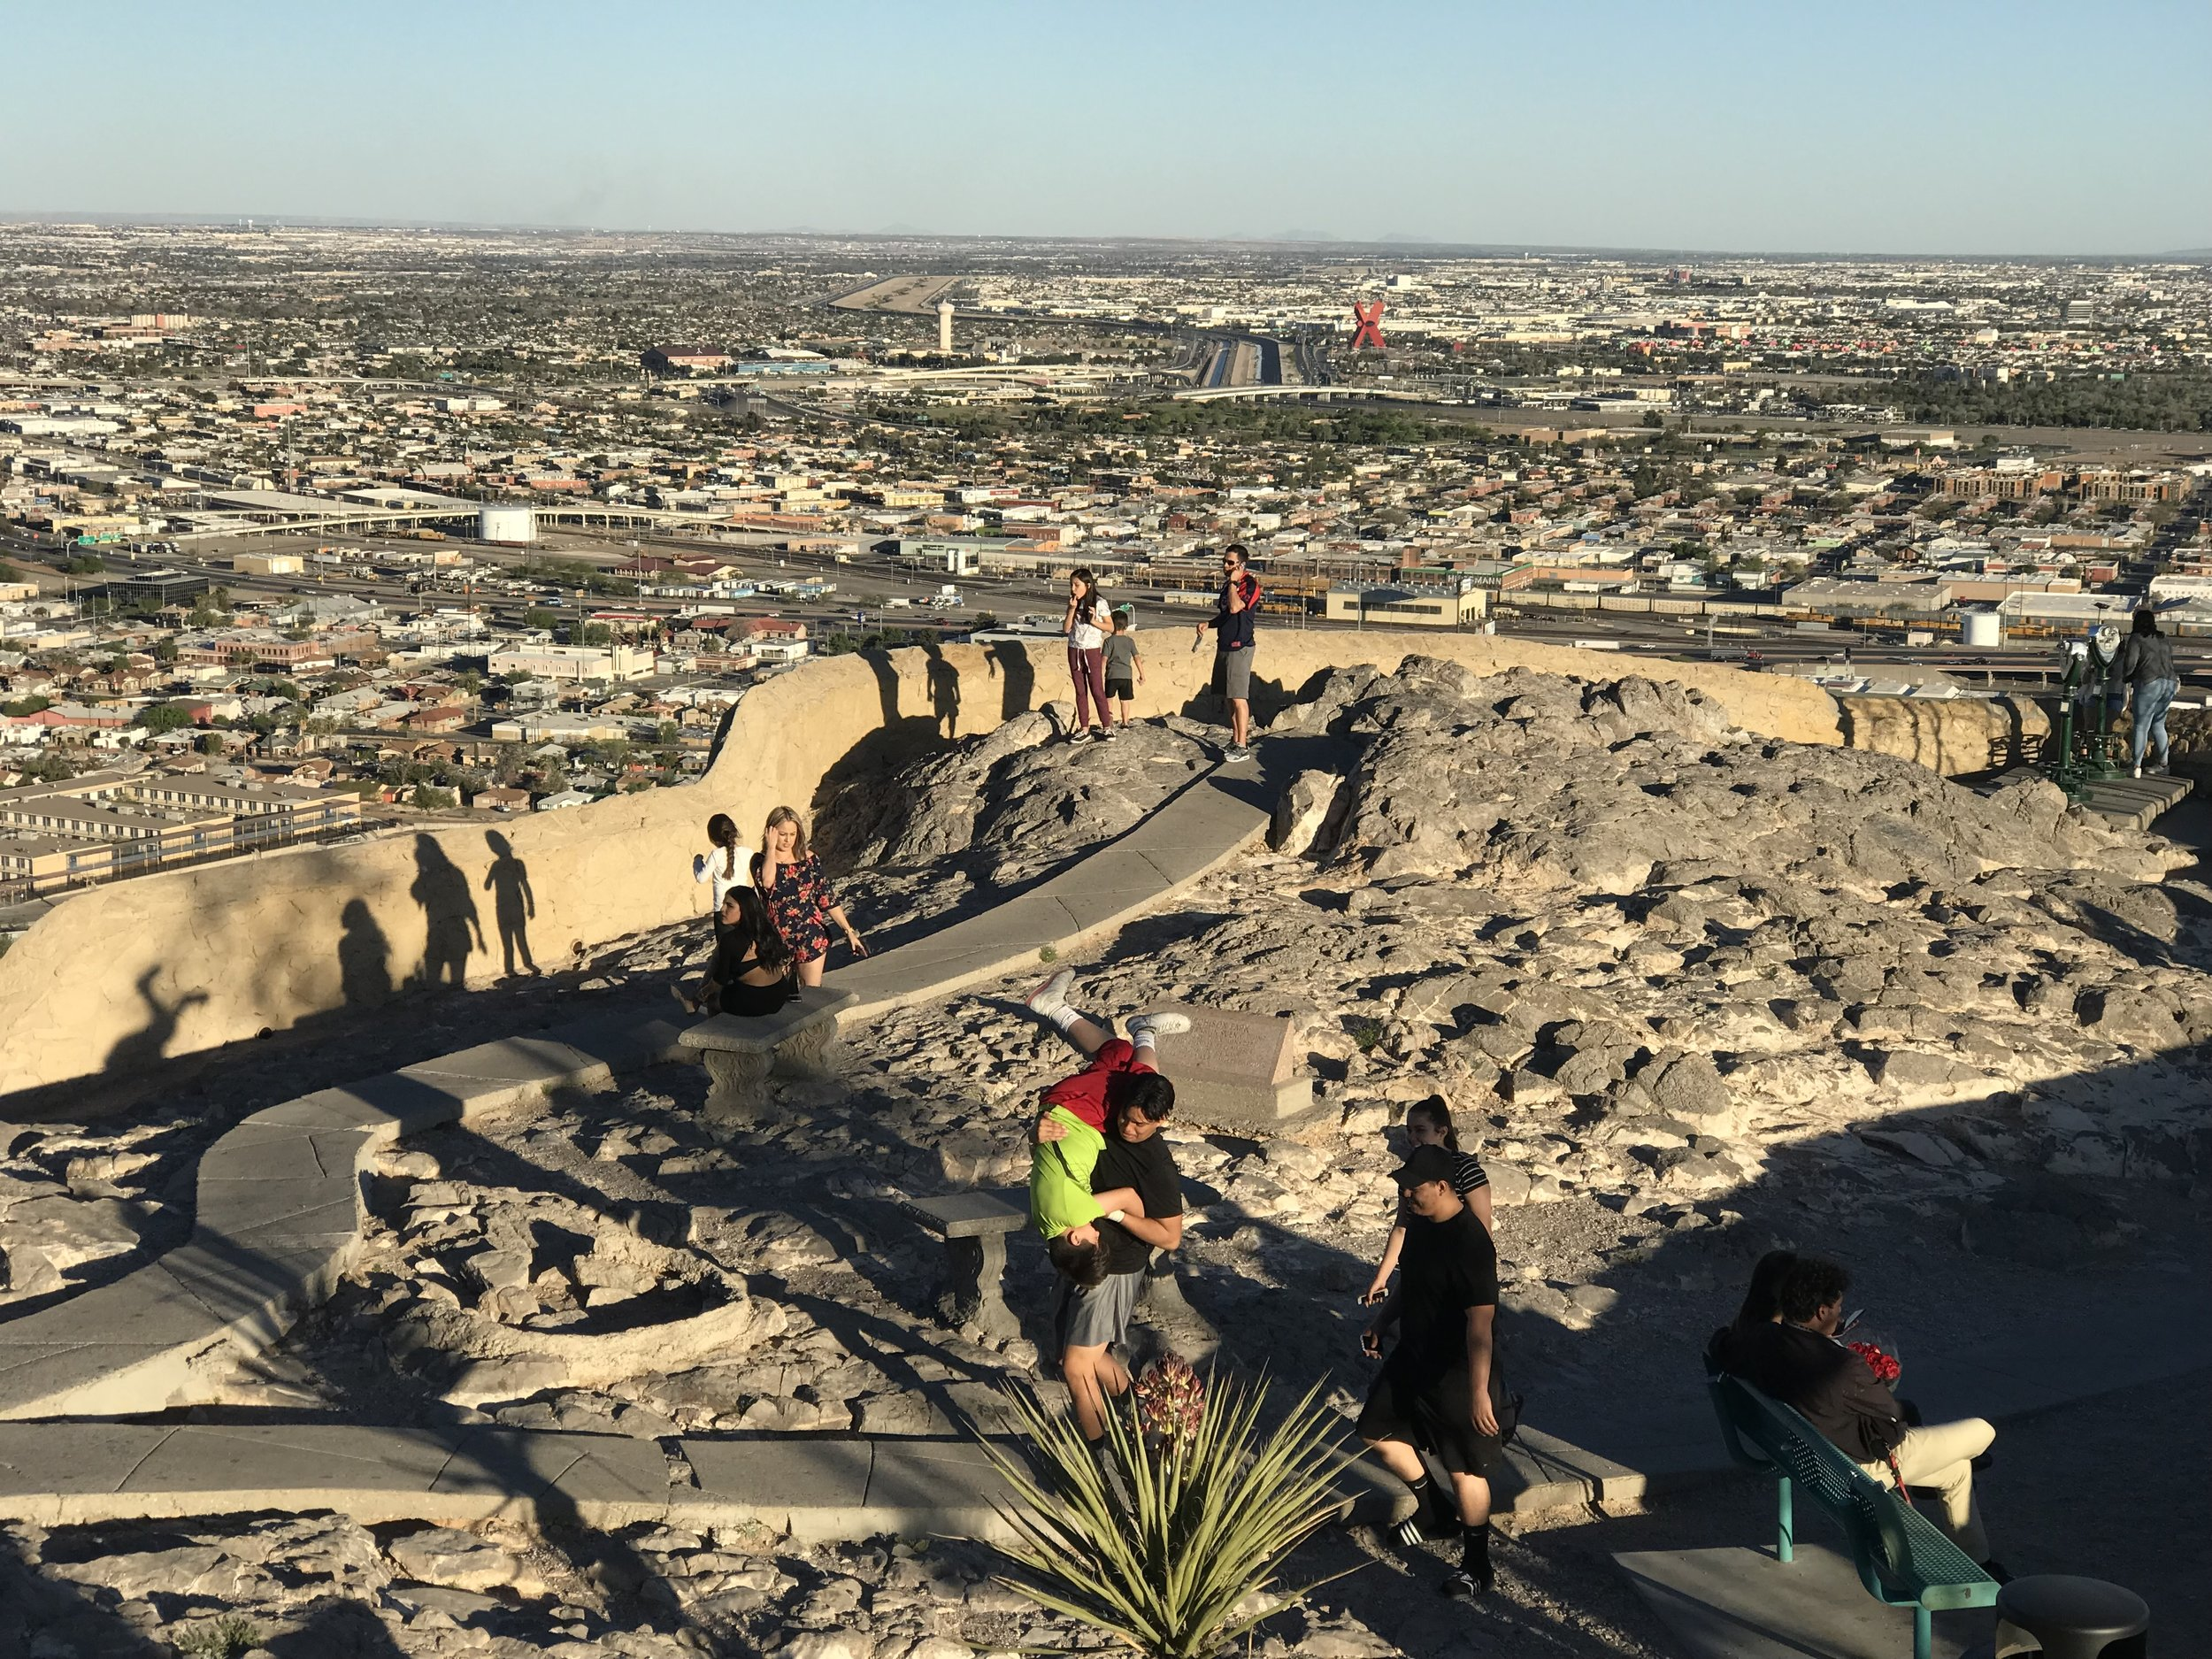 The view of the Rio Grande Valley from the Franklin Mountains north of El Paso. The X-shaped Monumento a la Mexicaneidad is on the Juarez side of the border.